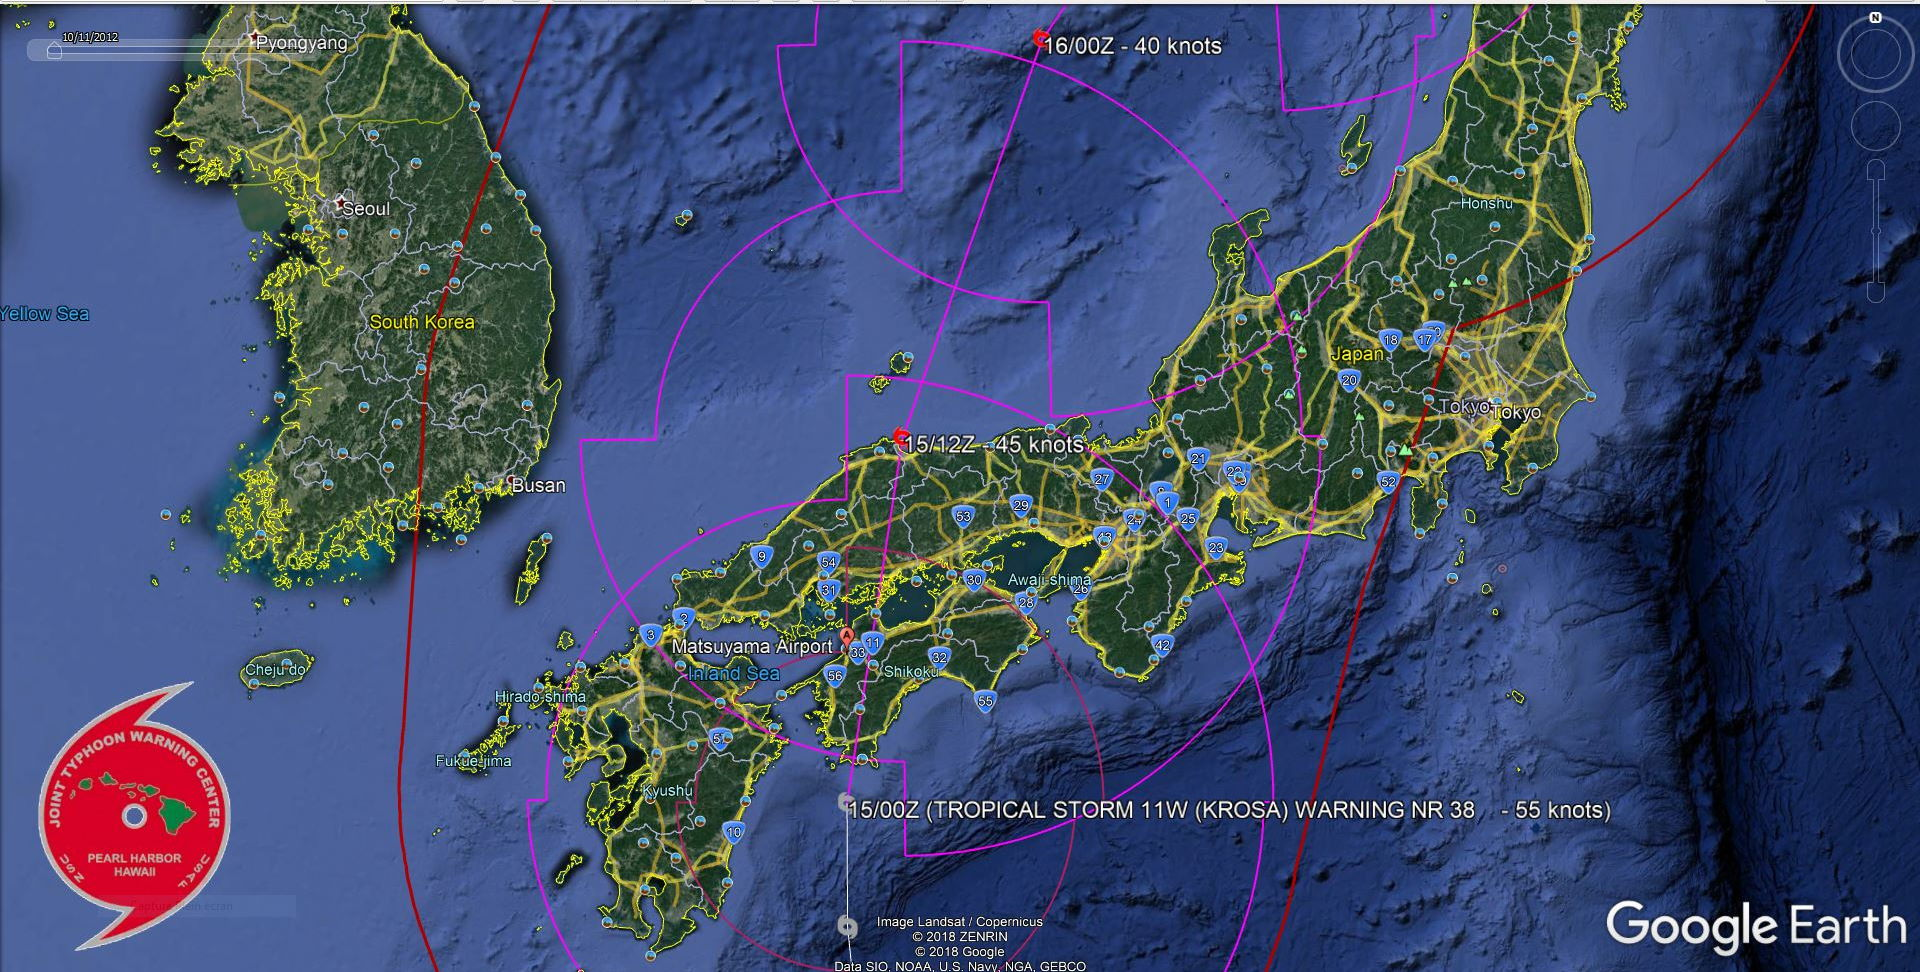 TS Krosa is forecast to begin extratropical transition in 24h over the Sea of Japan